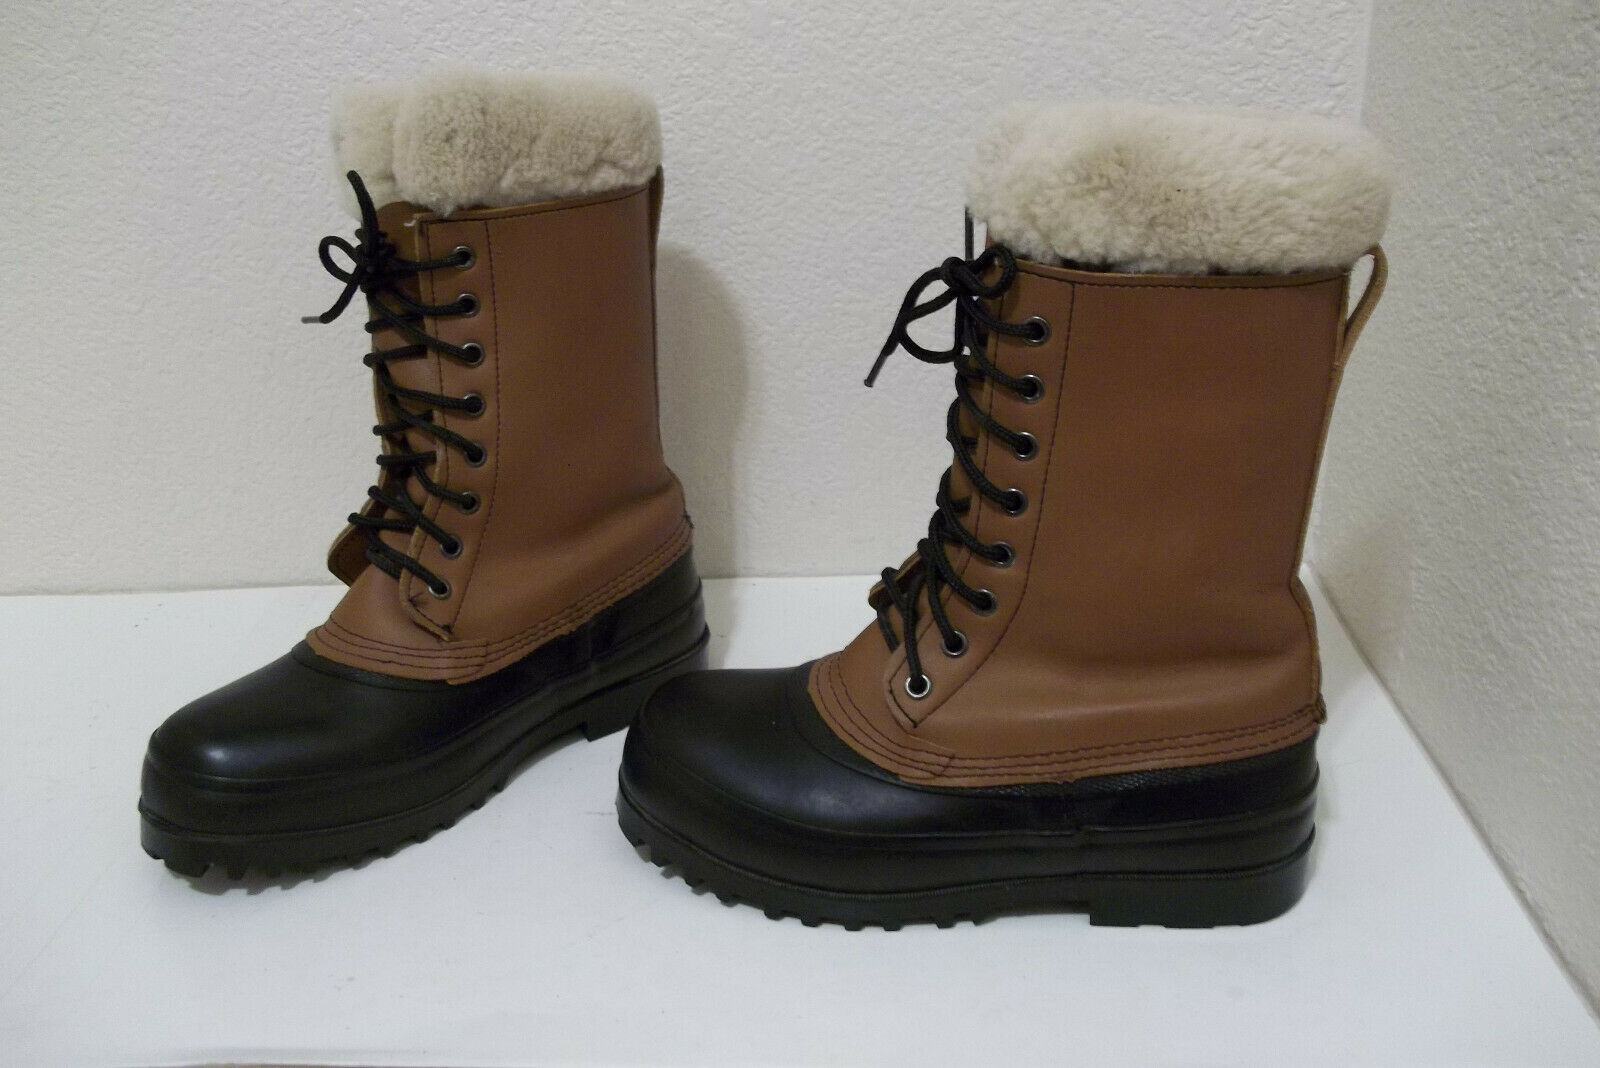 WOMENS J CREW 79891 LEATHER WATERPROOF WINTER SNOW BOOTS SZ 6 REMOVABLE LINERS